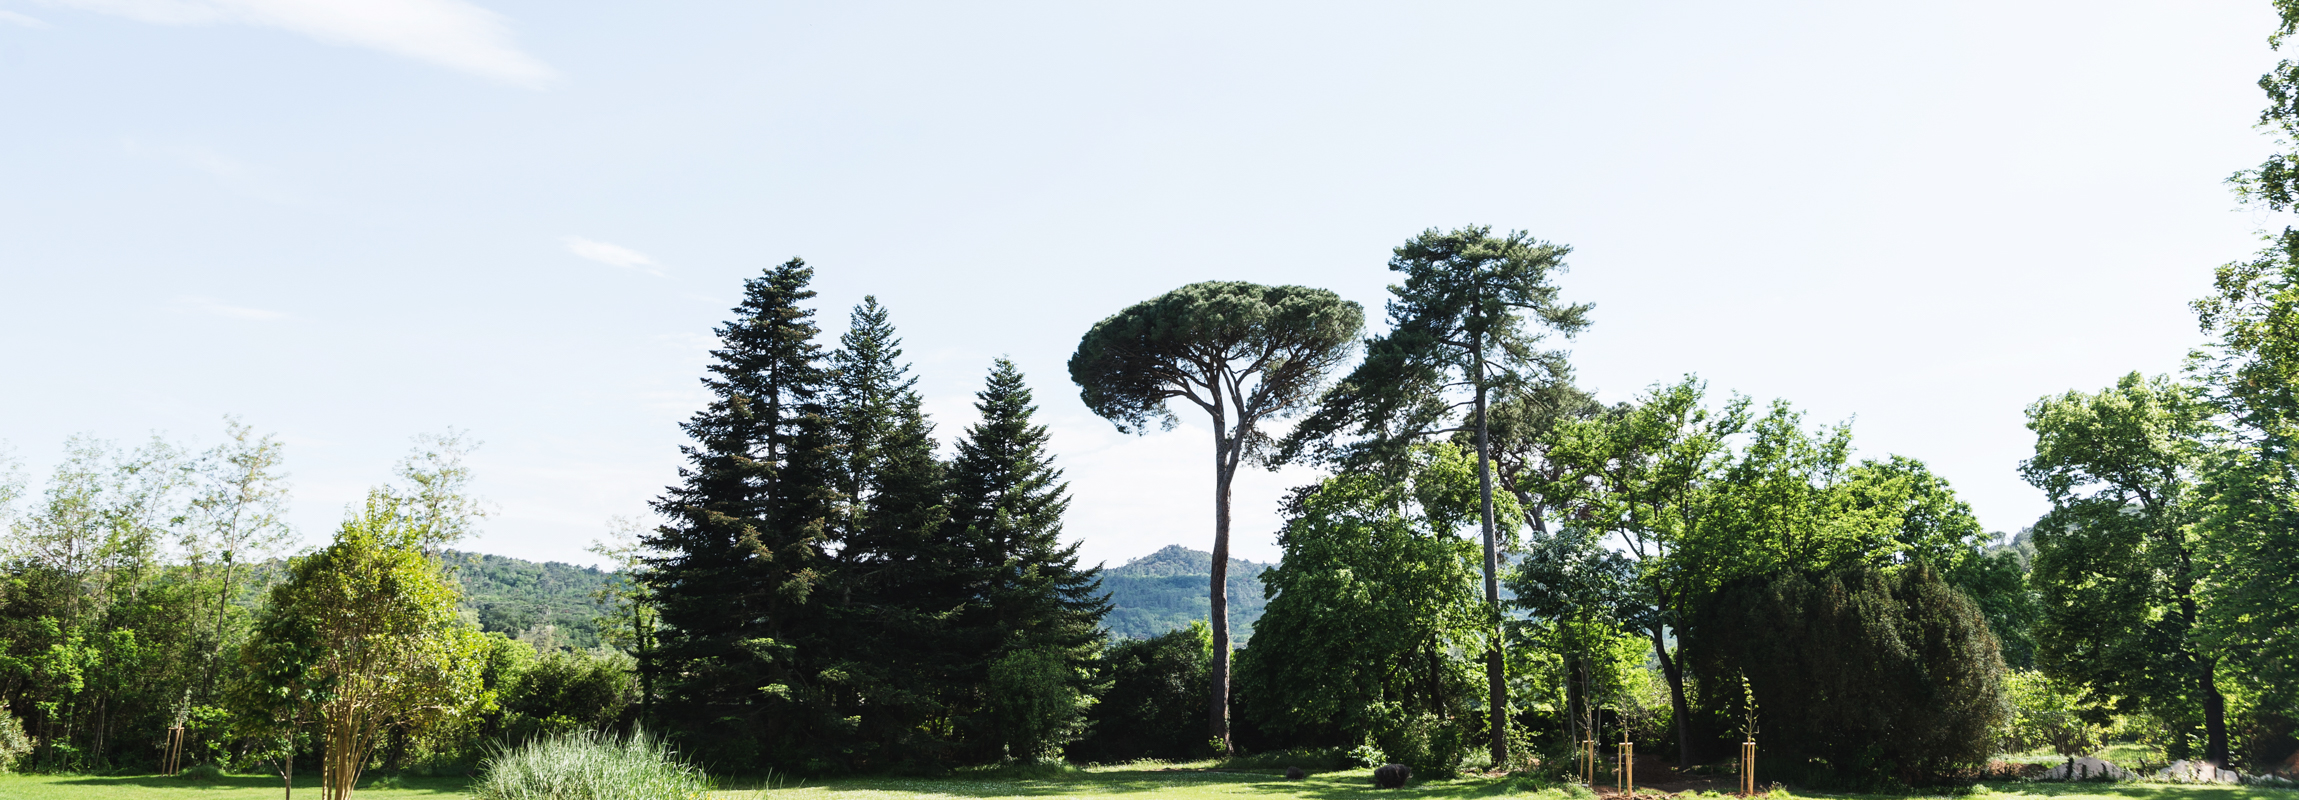 Old and new trees form the inventory of a magical place - the estate park of hotel Chateau de Montcaud, Provence, Southern France.